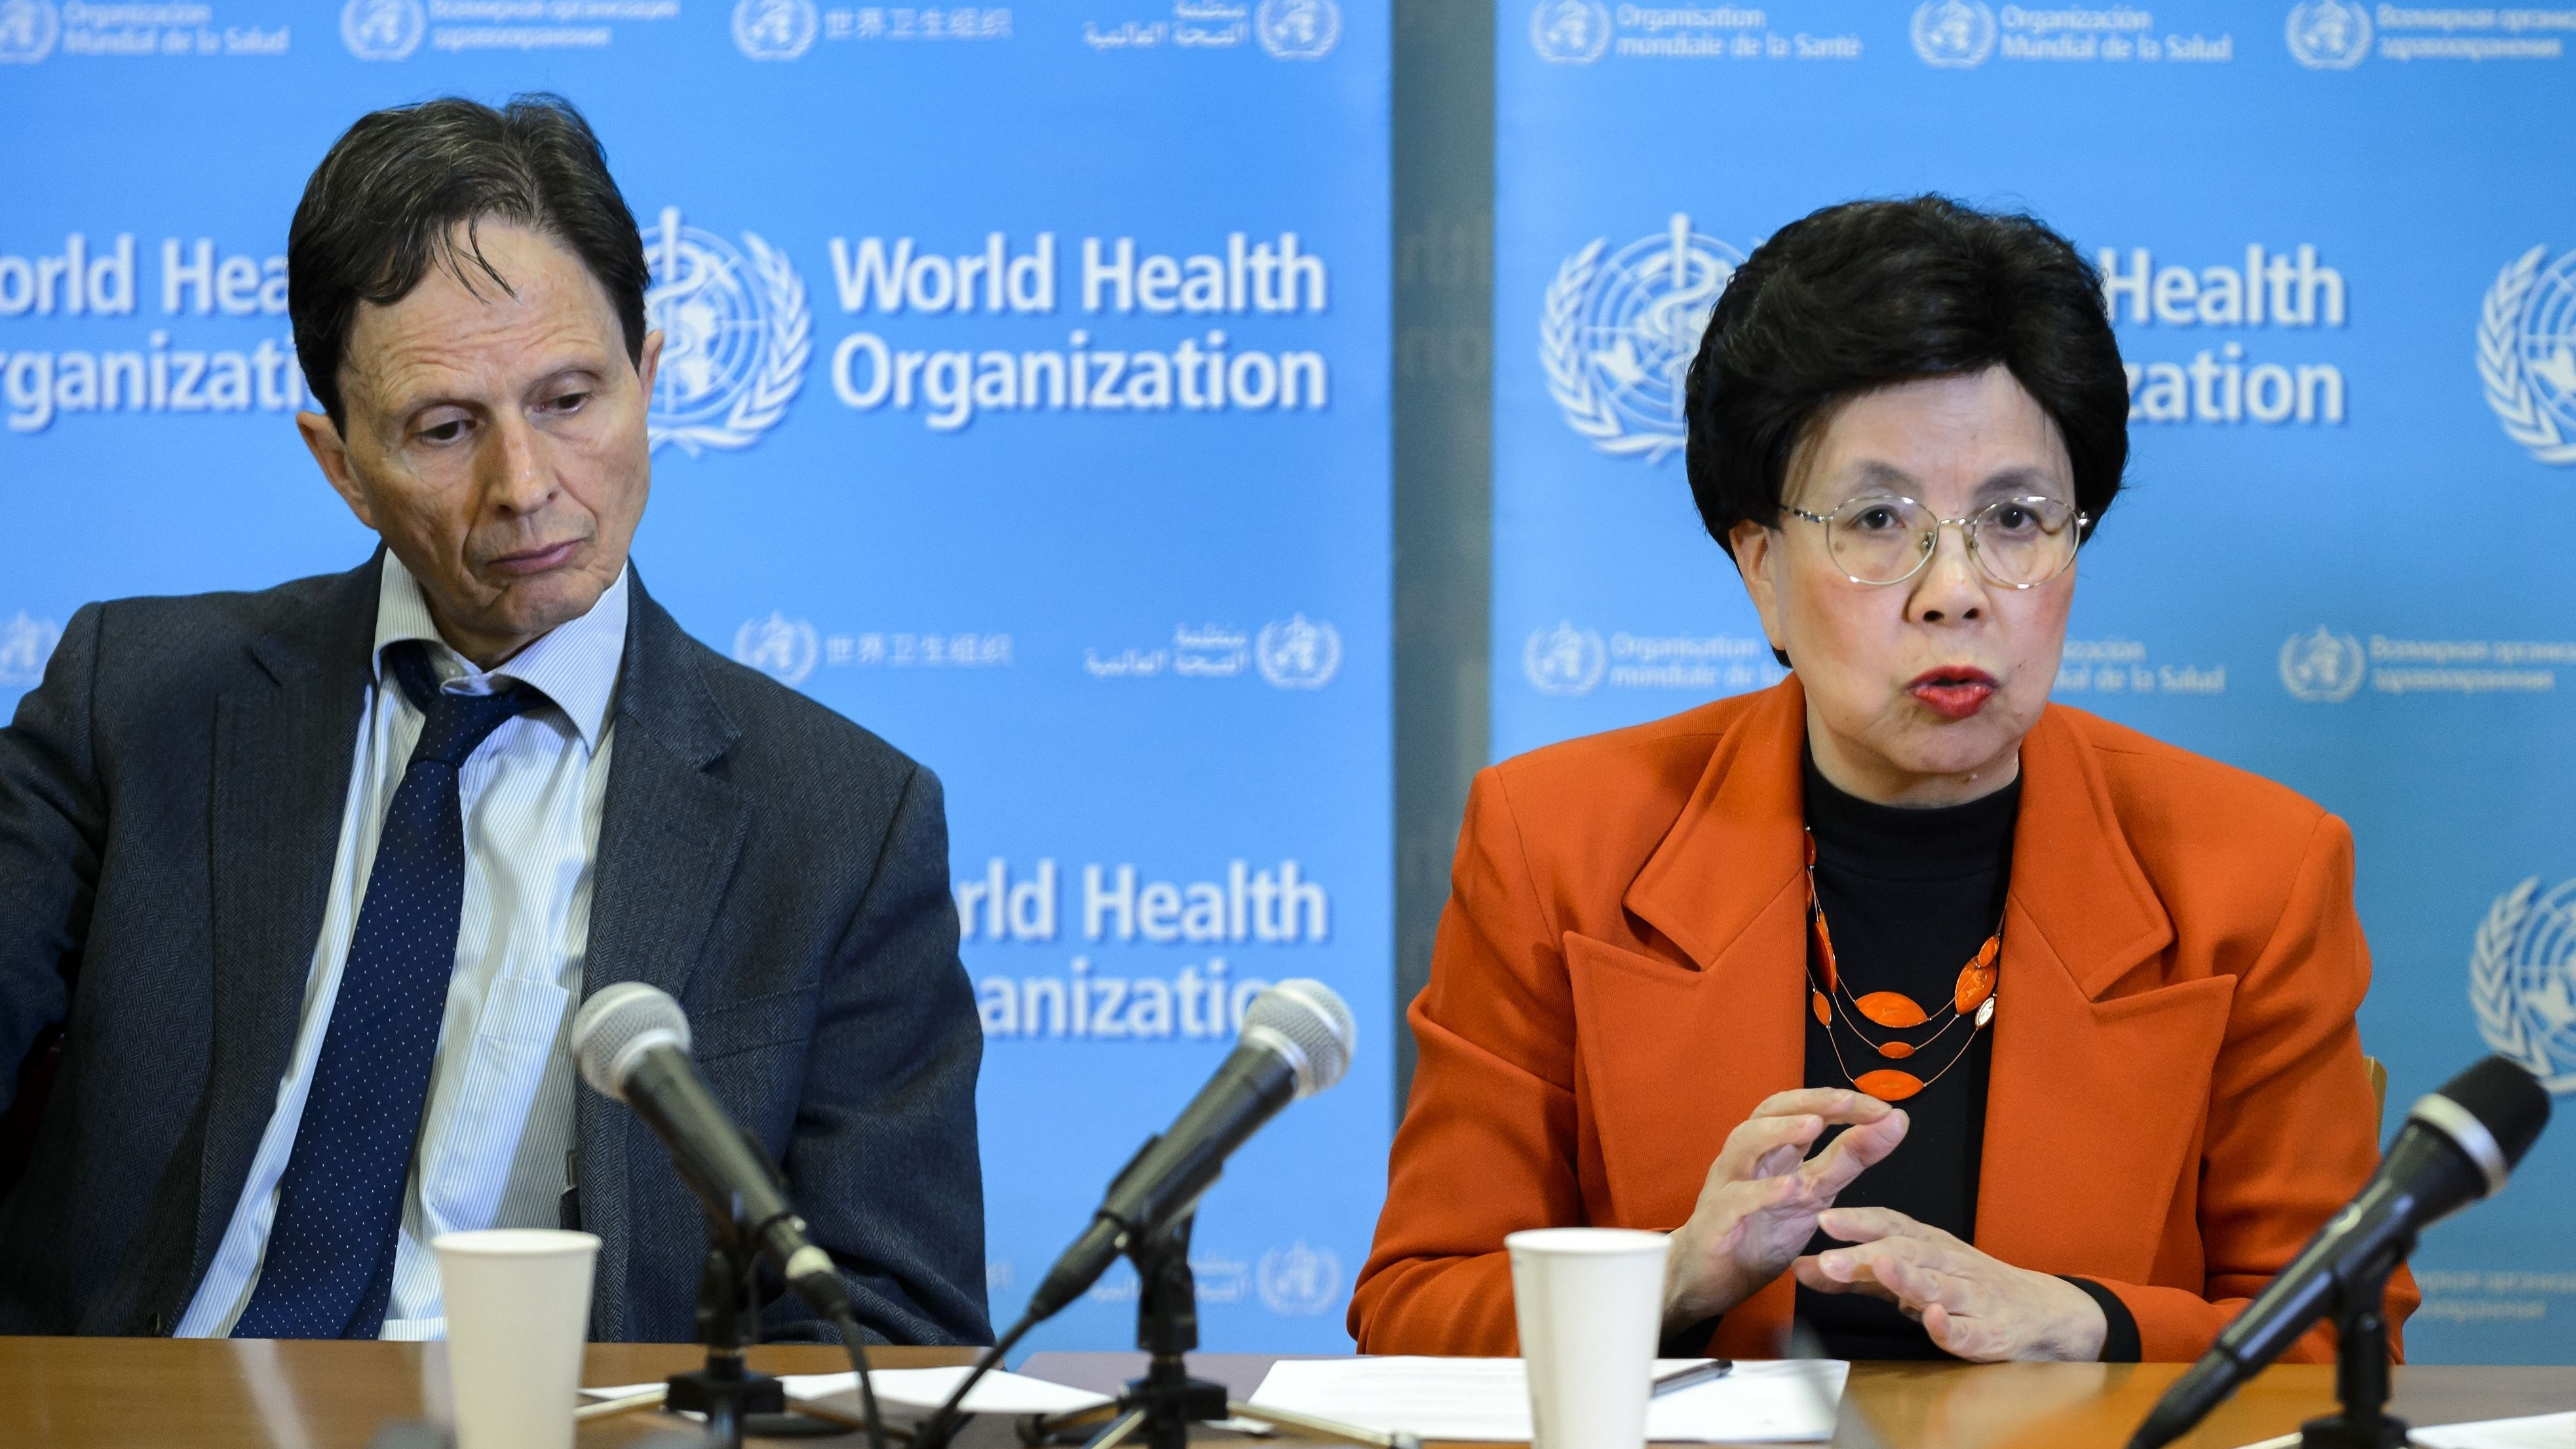 Dr. Margaret Chan, director-general of the World Health Organization, and Dr. David L. Heymann, WHO assistant director-general, announce the global emergency during a news conference Monday in Geneva.